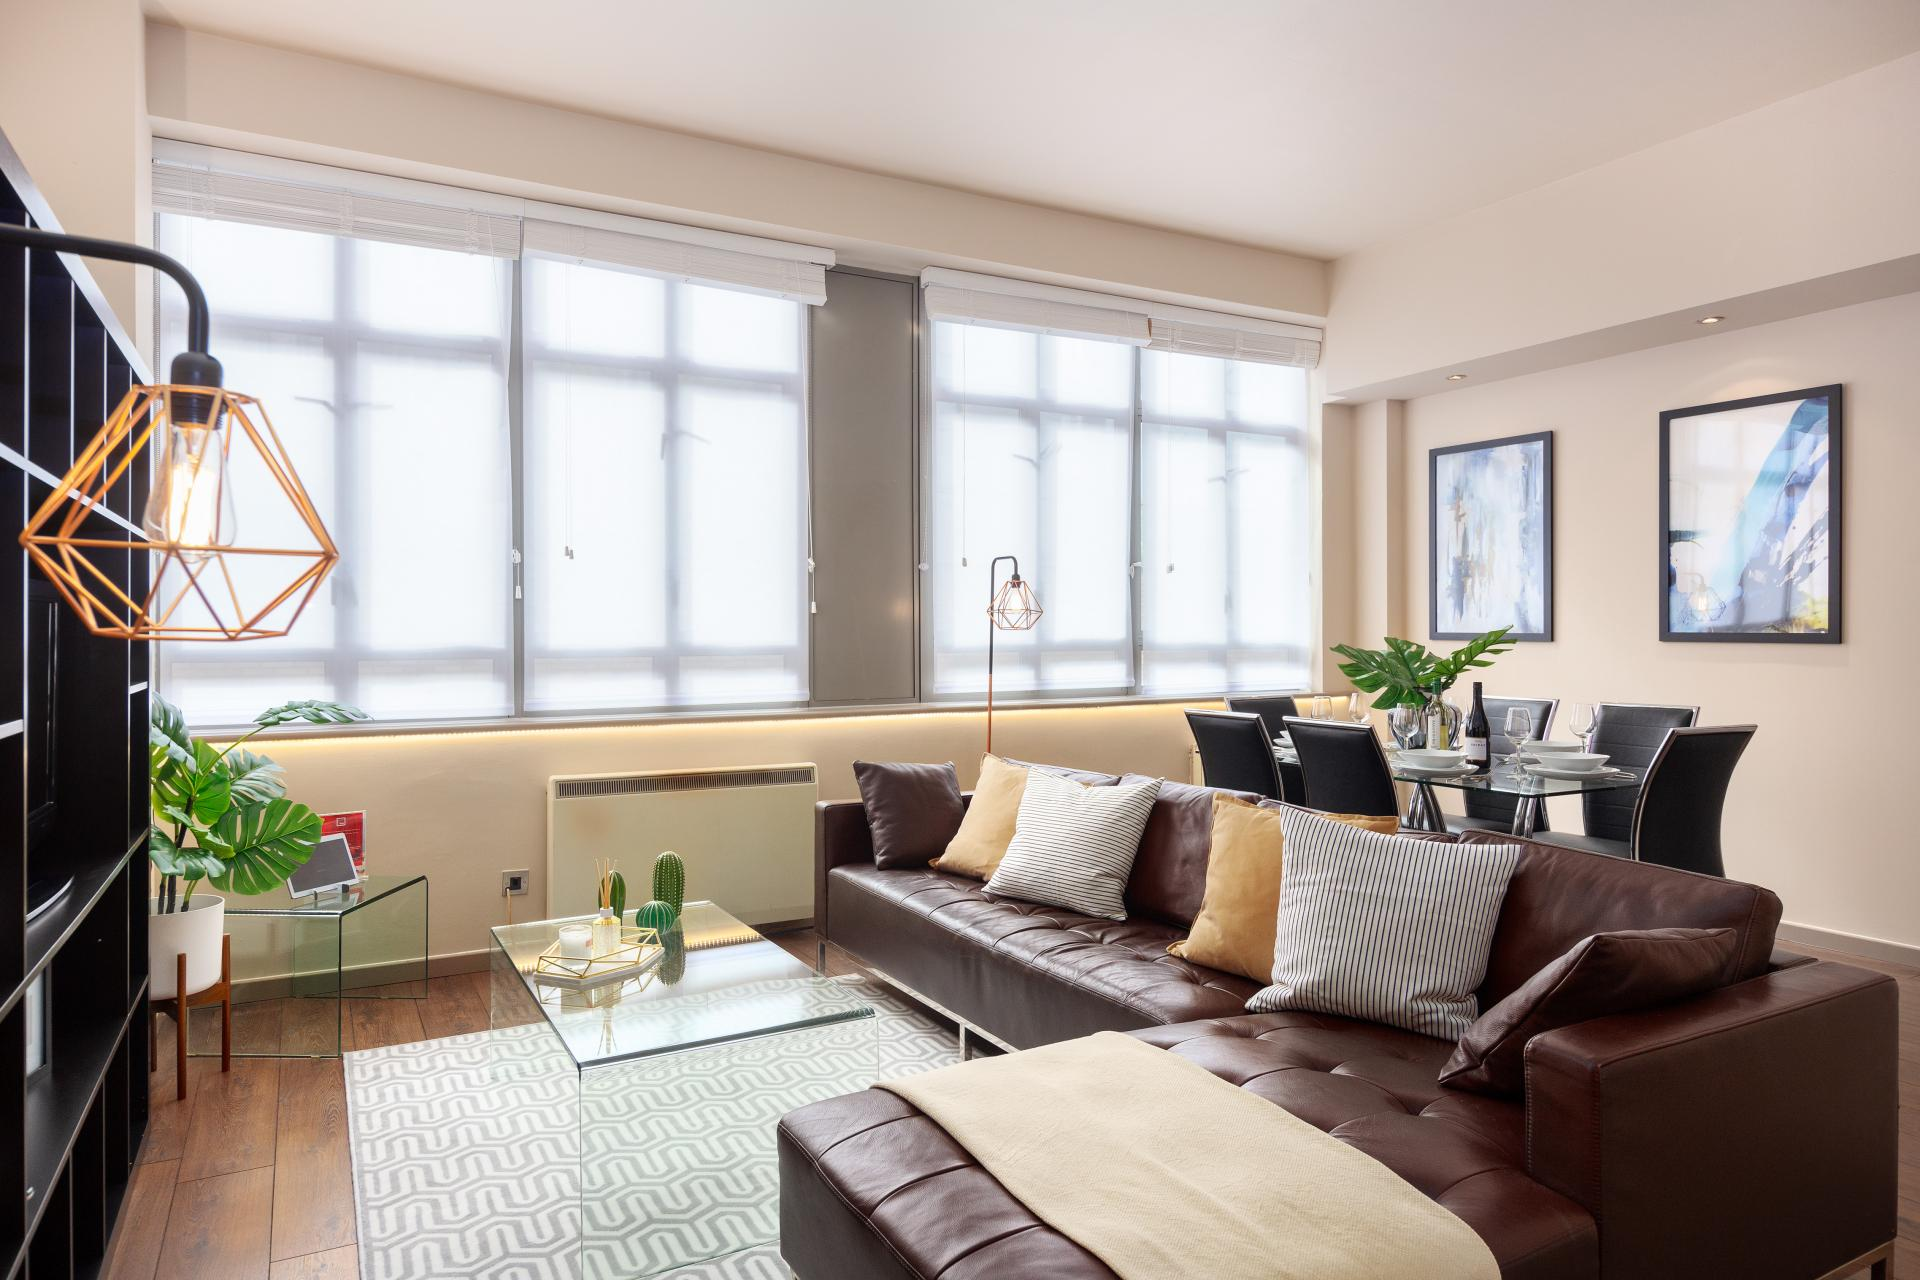 Living Area at Lawrence House Serviced Apartments, Old Street, London - Citybase Apartments